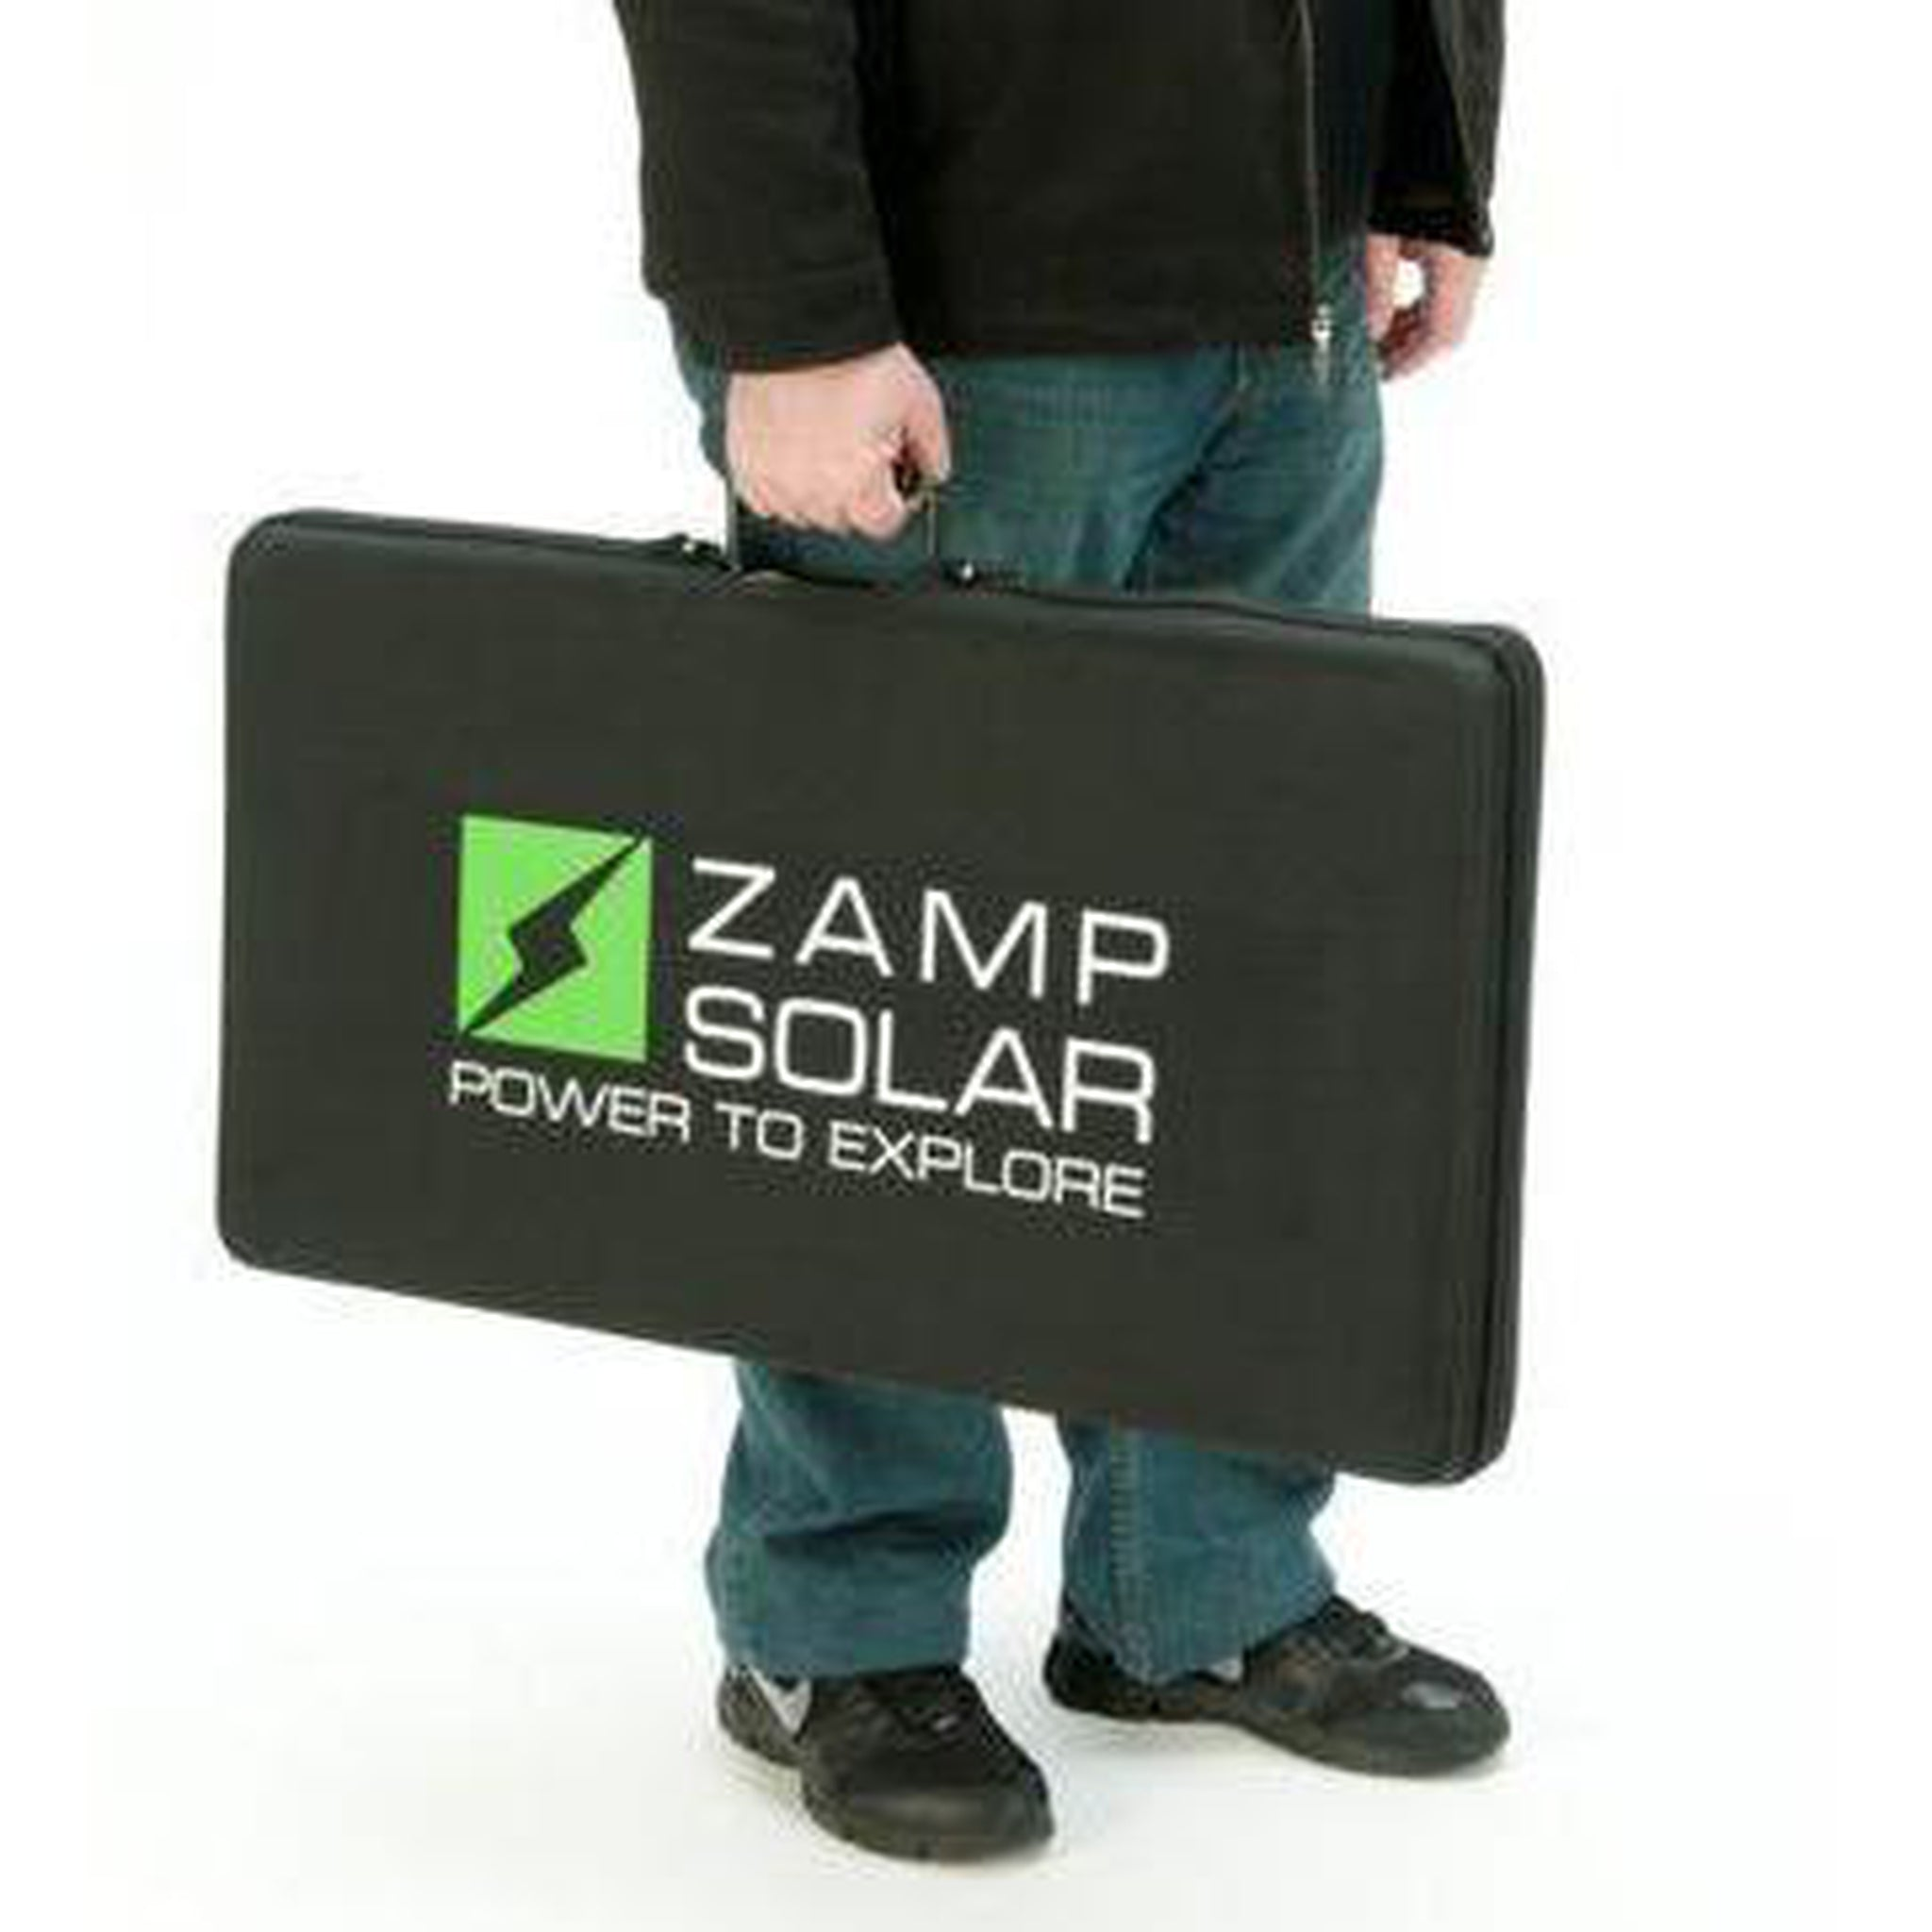 ZAMP solar 140 watt portable rv solar kit